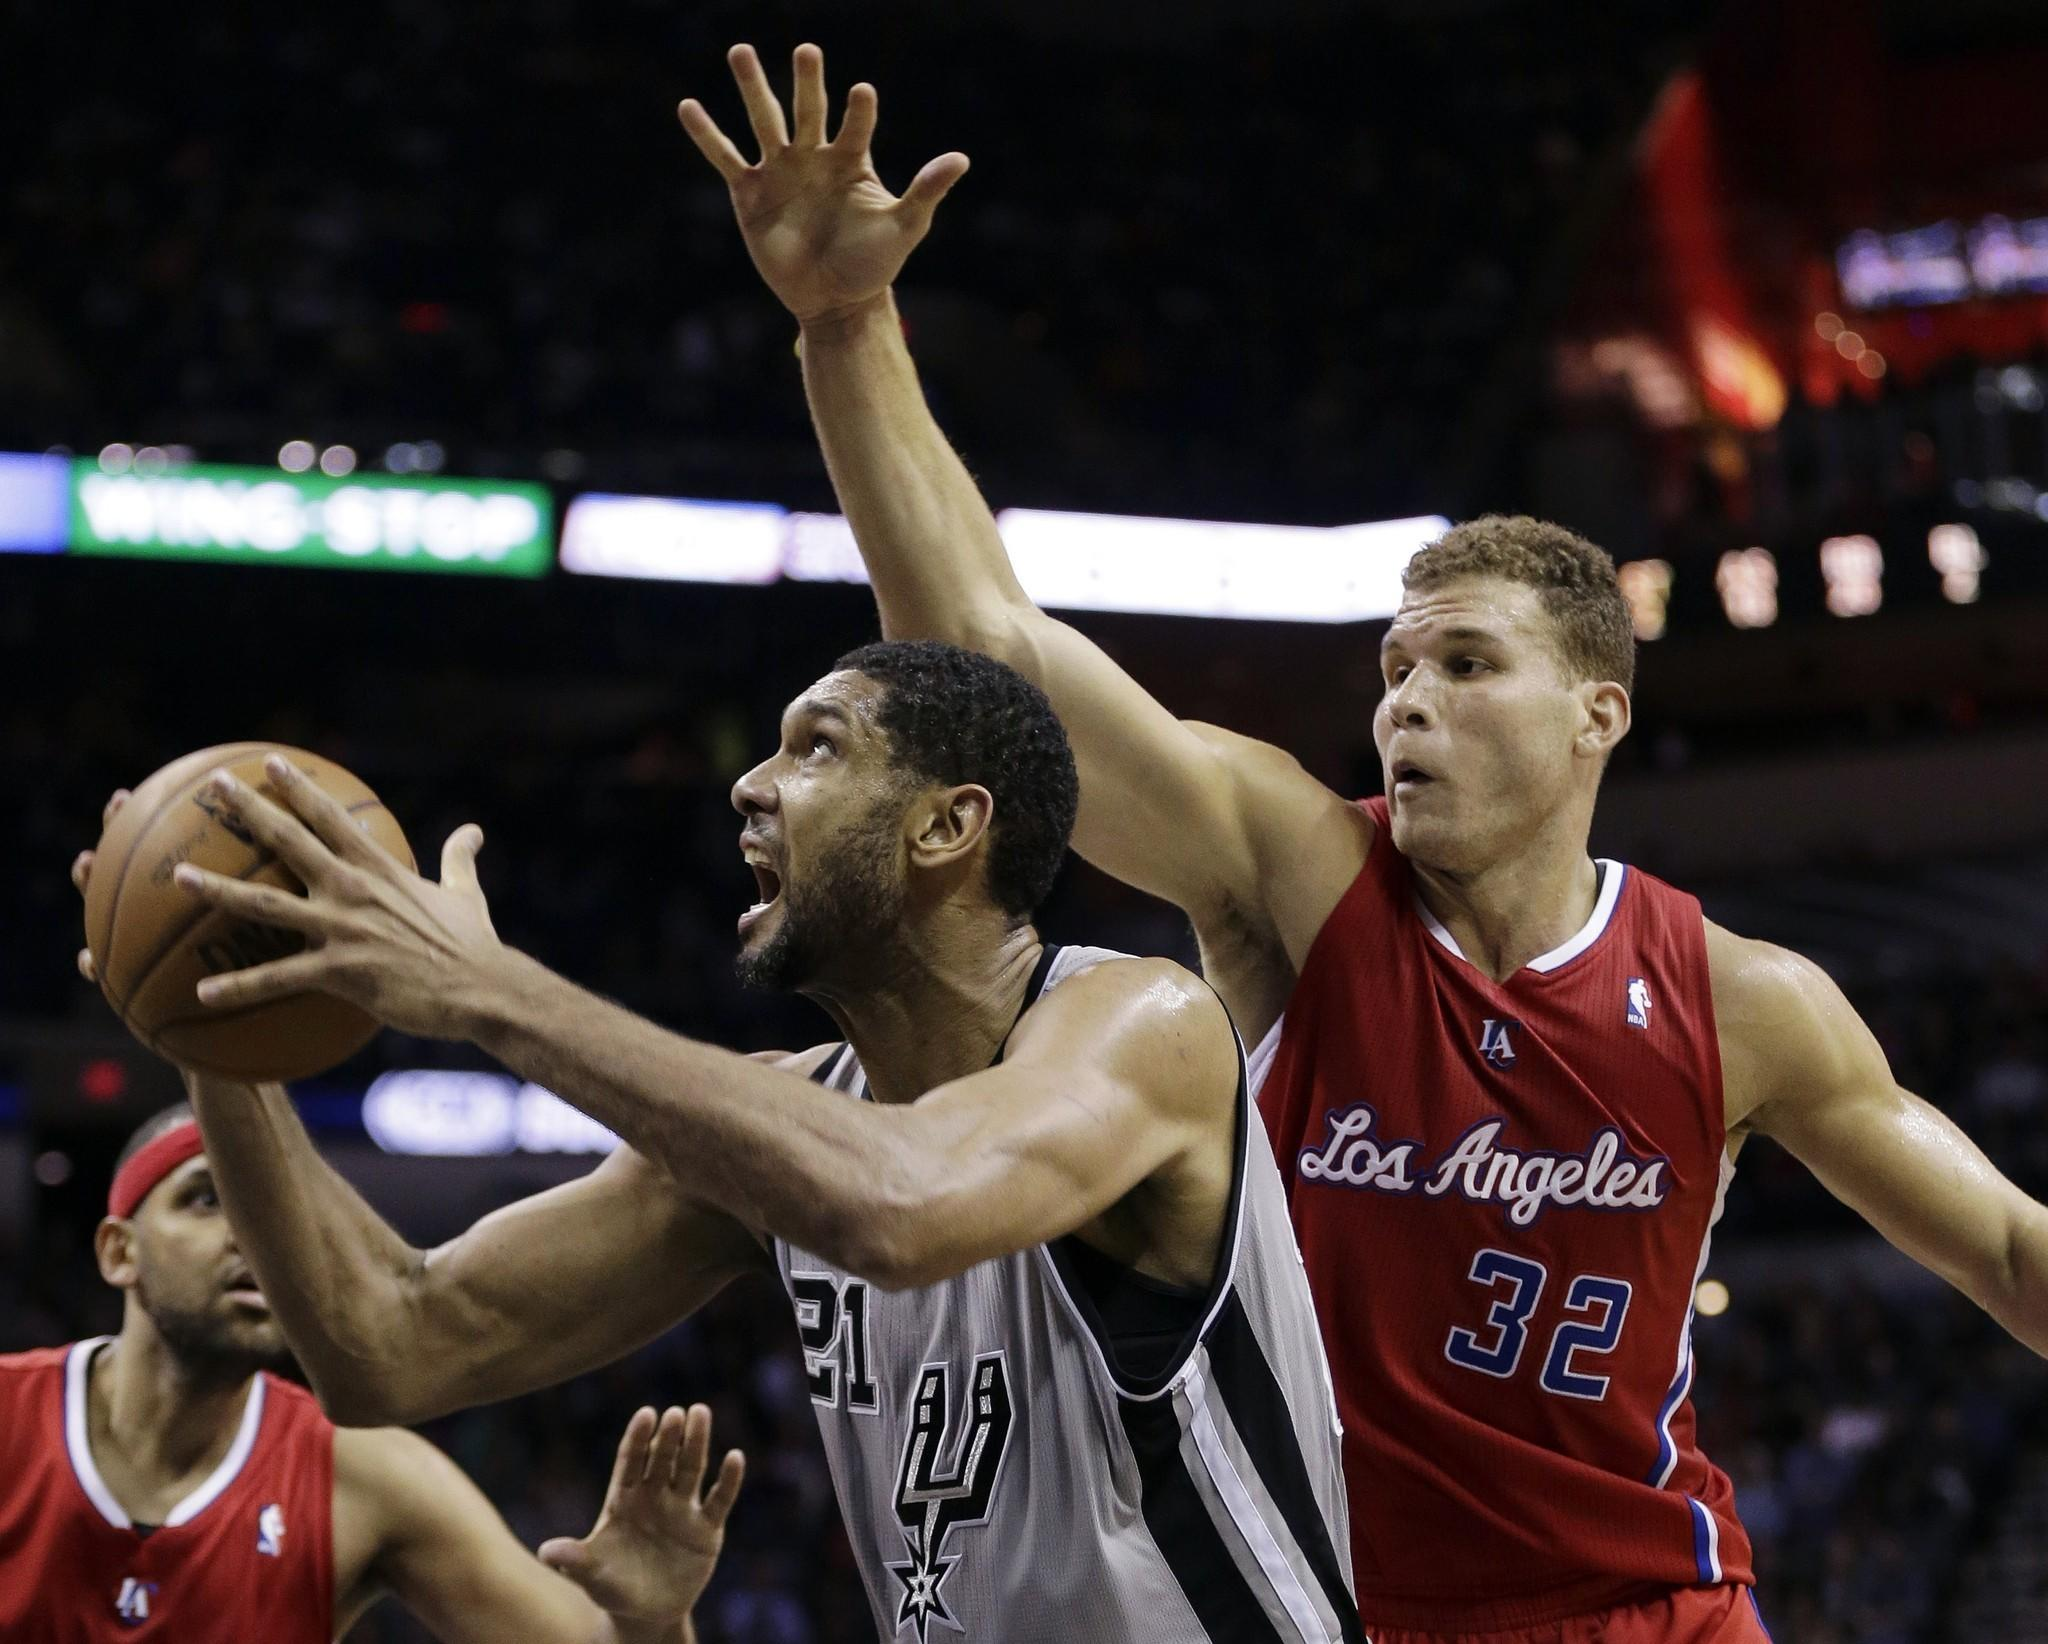 Spurs power forward Tim Duncan tries to power his way to the basket against Clippers power forward Blake Griffin during a game last month in San Antonio.